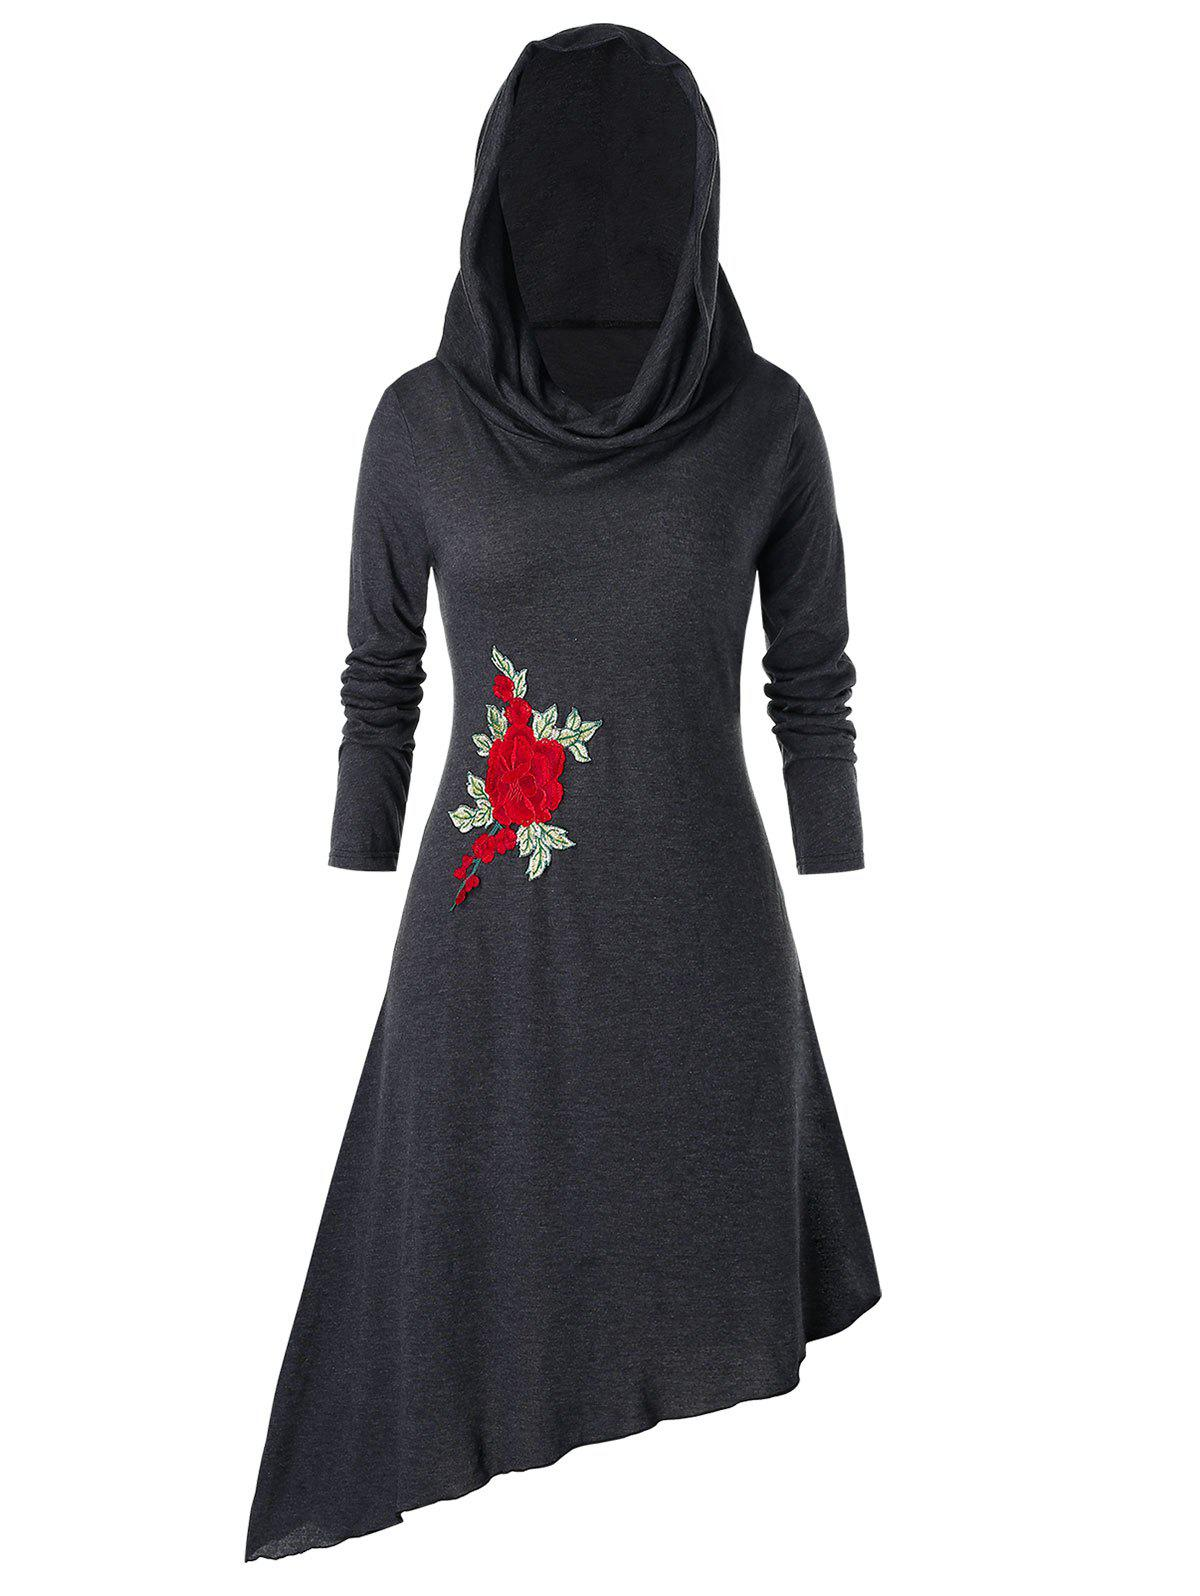 Plus Size Hooded Embroidered Asymmetric Dress - CARBON GRAY 5X